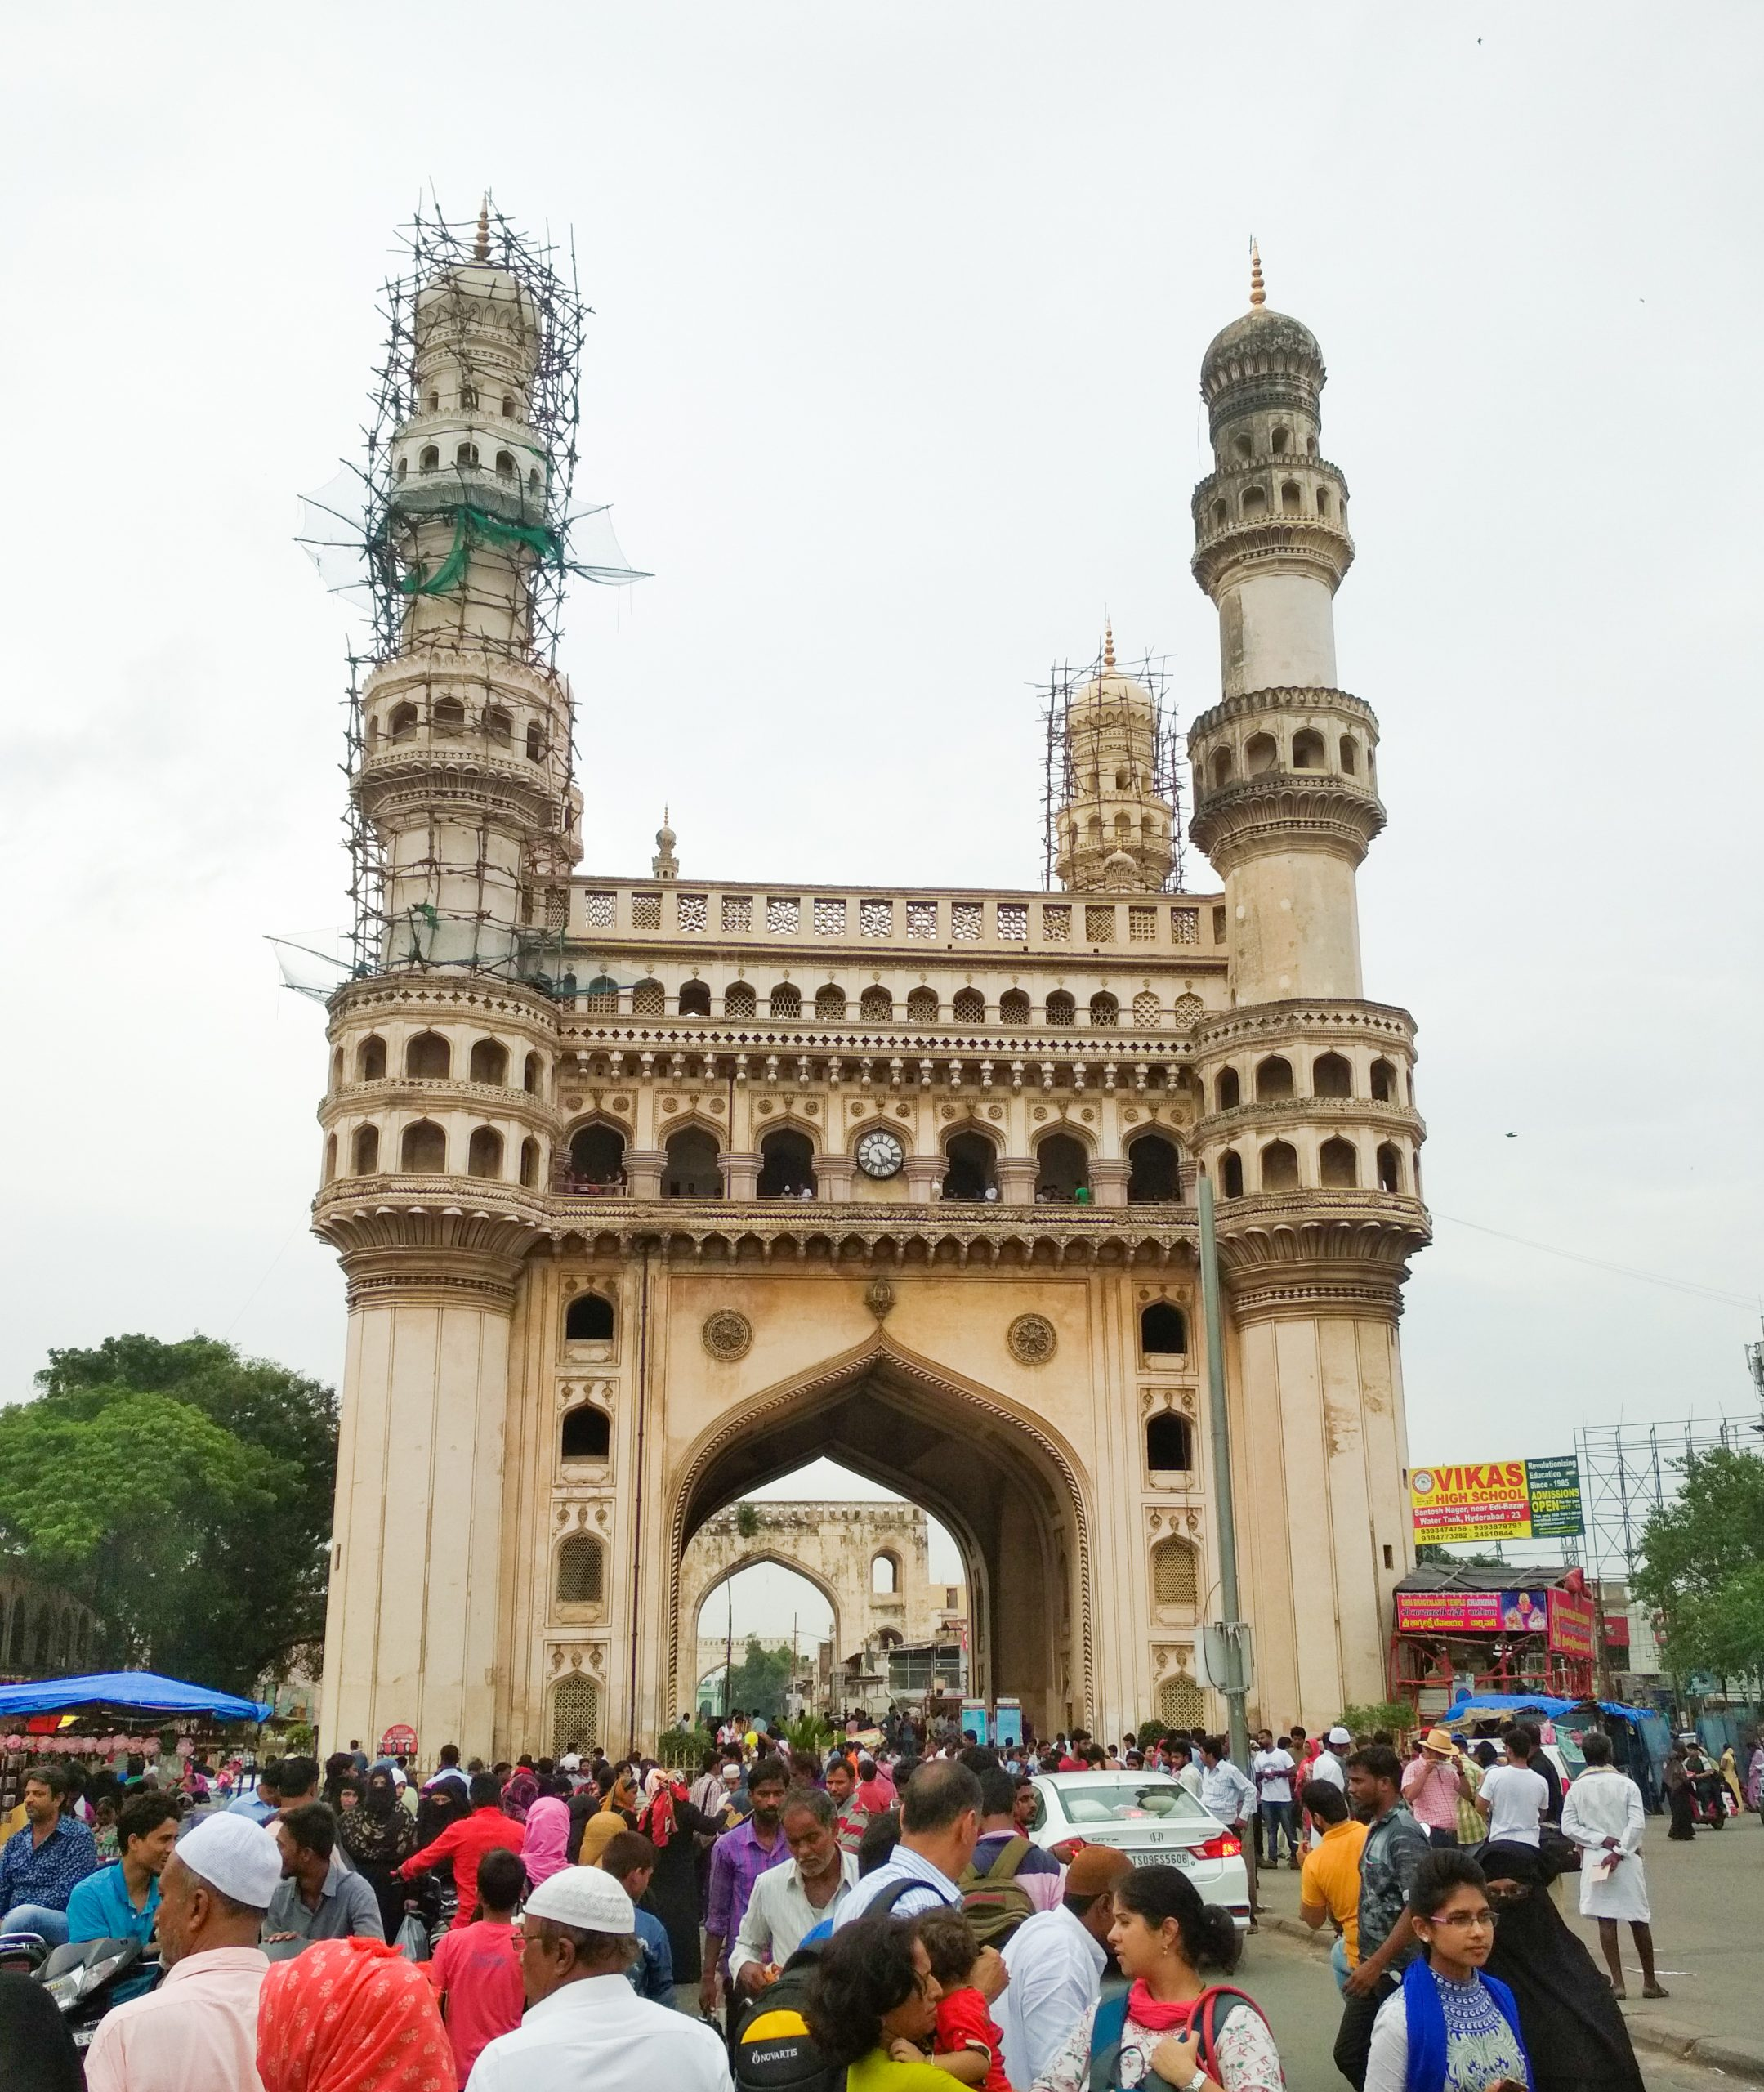 People at Char Minar in Hyderabad